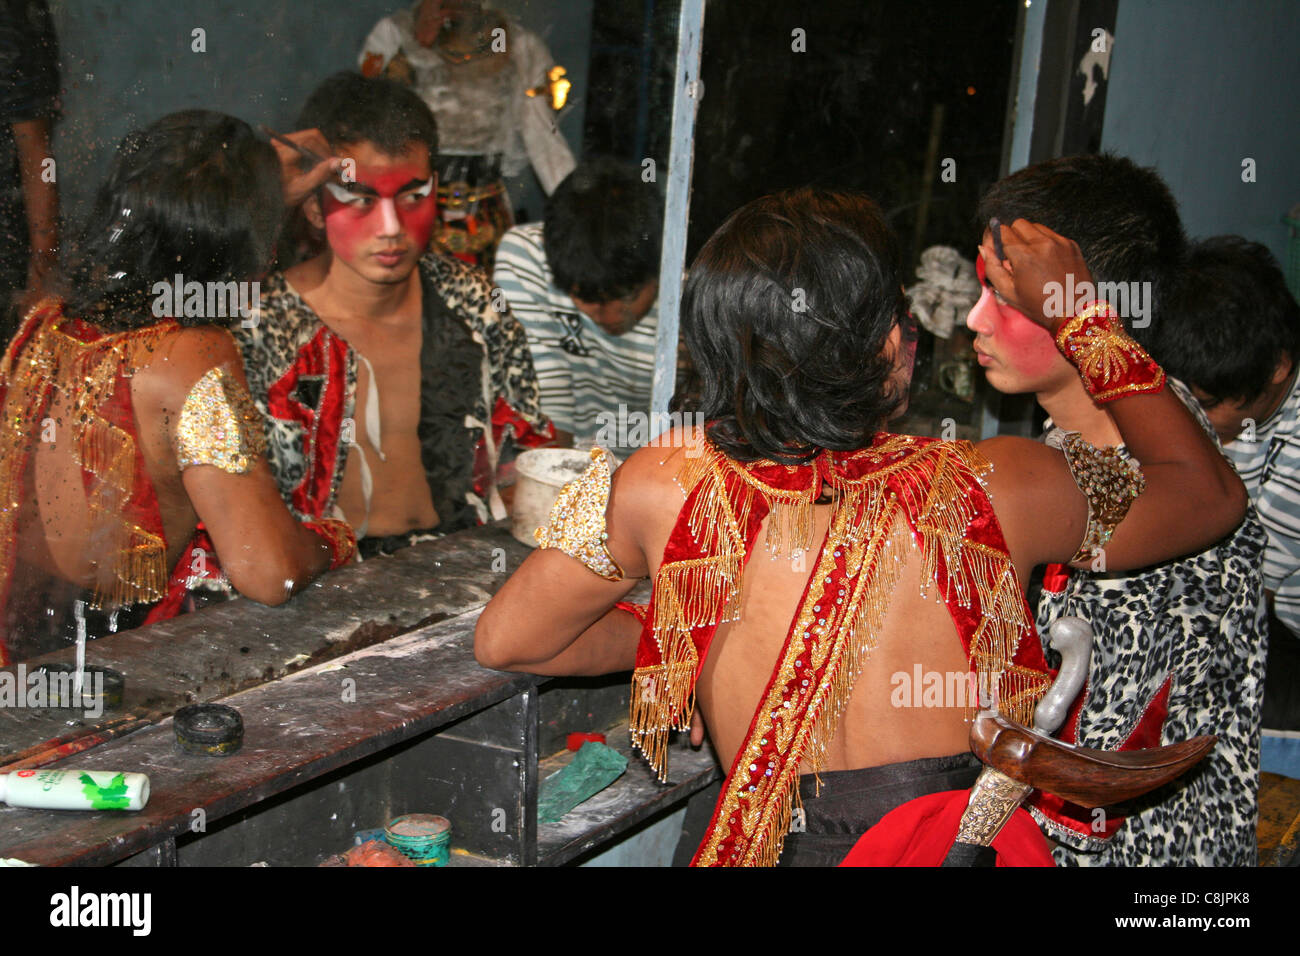 Dance Performers Applying Make-up Backstage Before A Production Of The Hindu Epic 'The Ramayana' - Stock Image